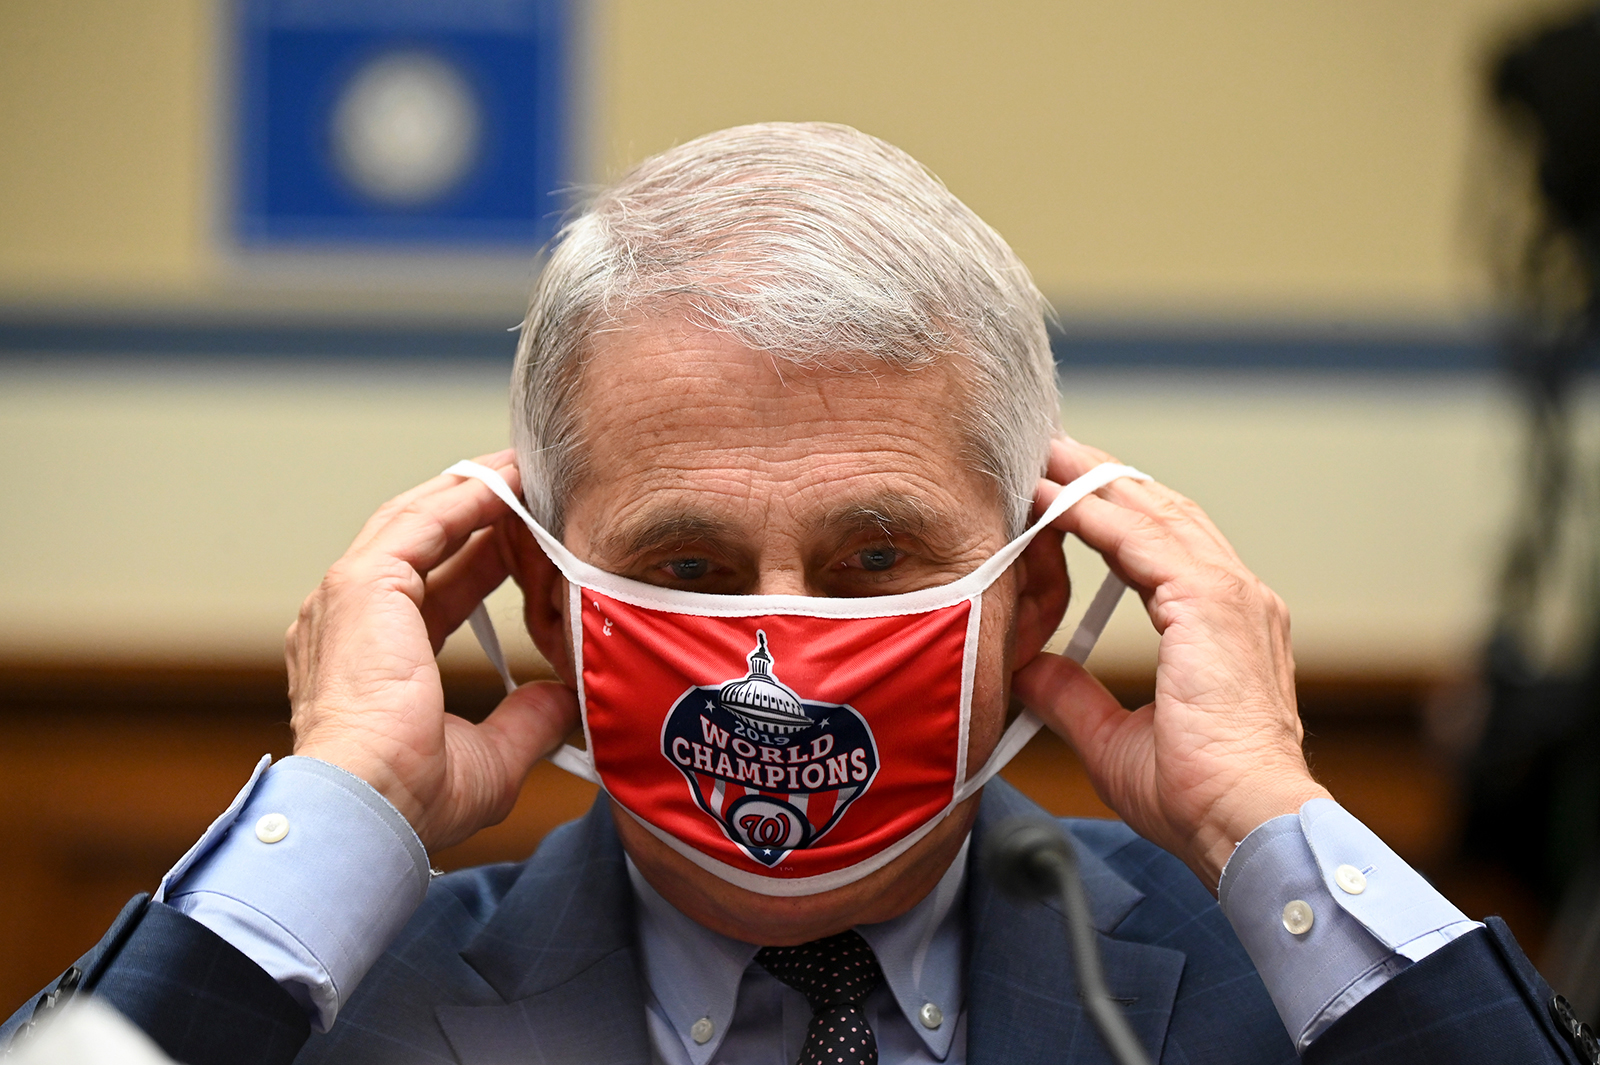 Anthony Fauci, director of the National Institute of Allergy and Infectious Diseases, removes his Washington Nationals protective mask during a House Select Subcommittee on the Coronavirus Crisis hearing on July 31.